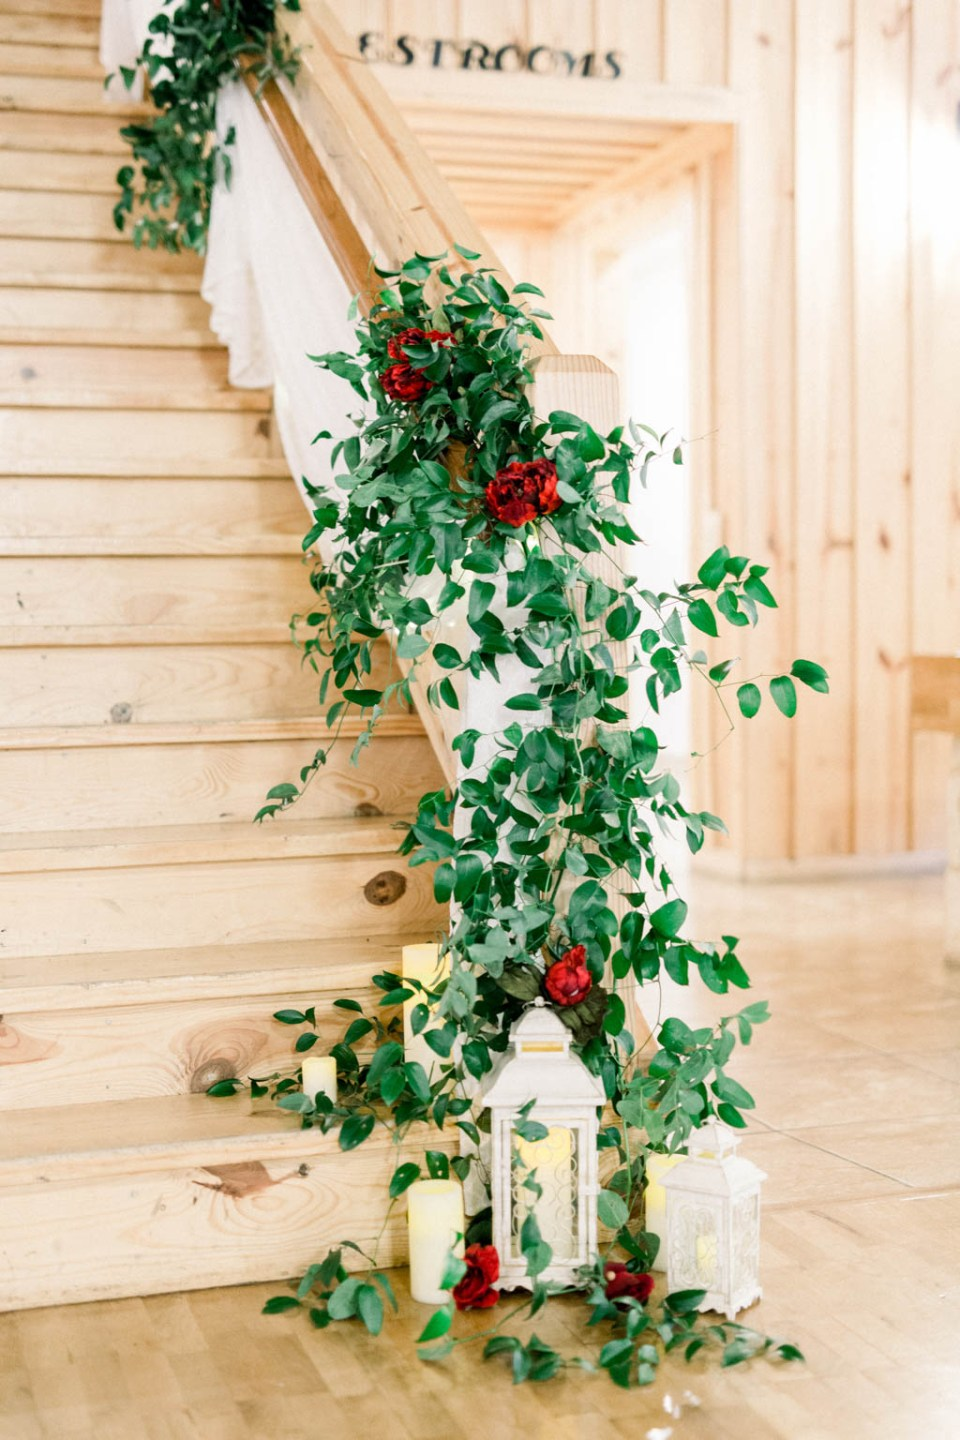 Wedding flowers by Dallas florist Wild Rose Events, photographed by Dallas wedding photographer Adria Lea Photography, flower staircase and wedding greenery